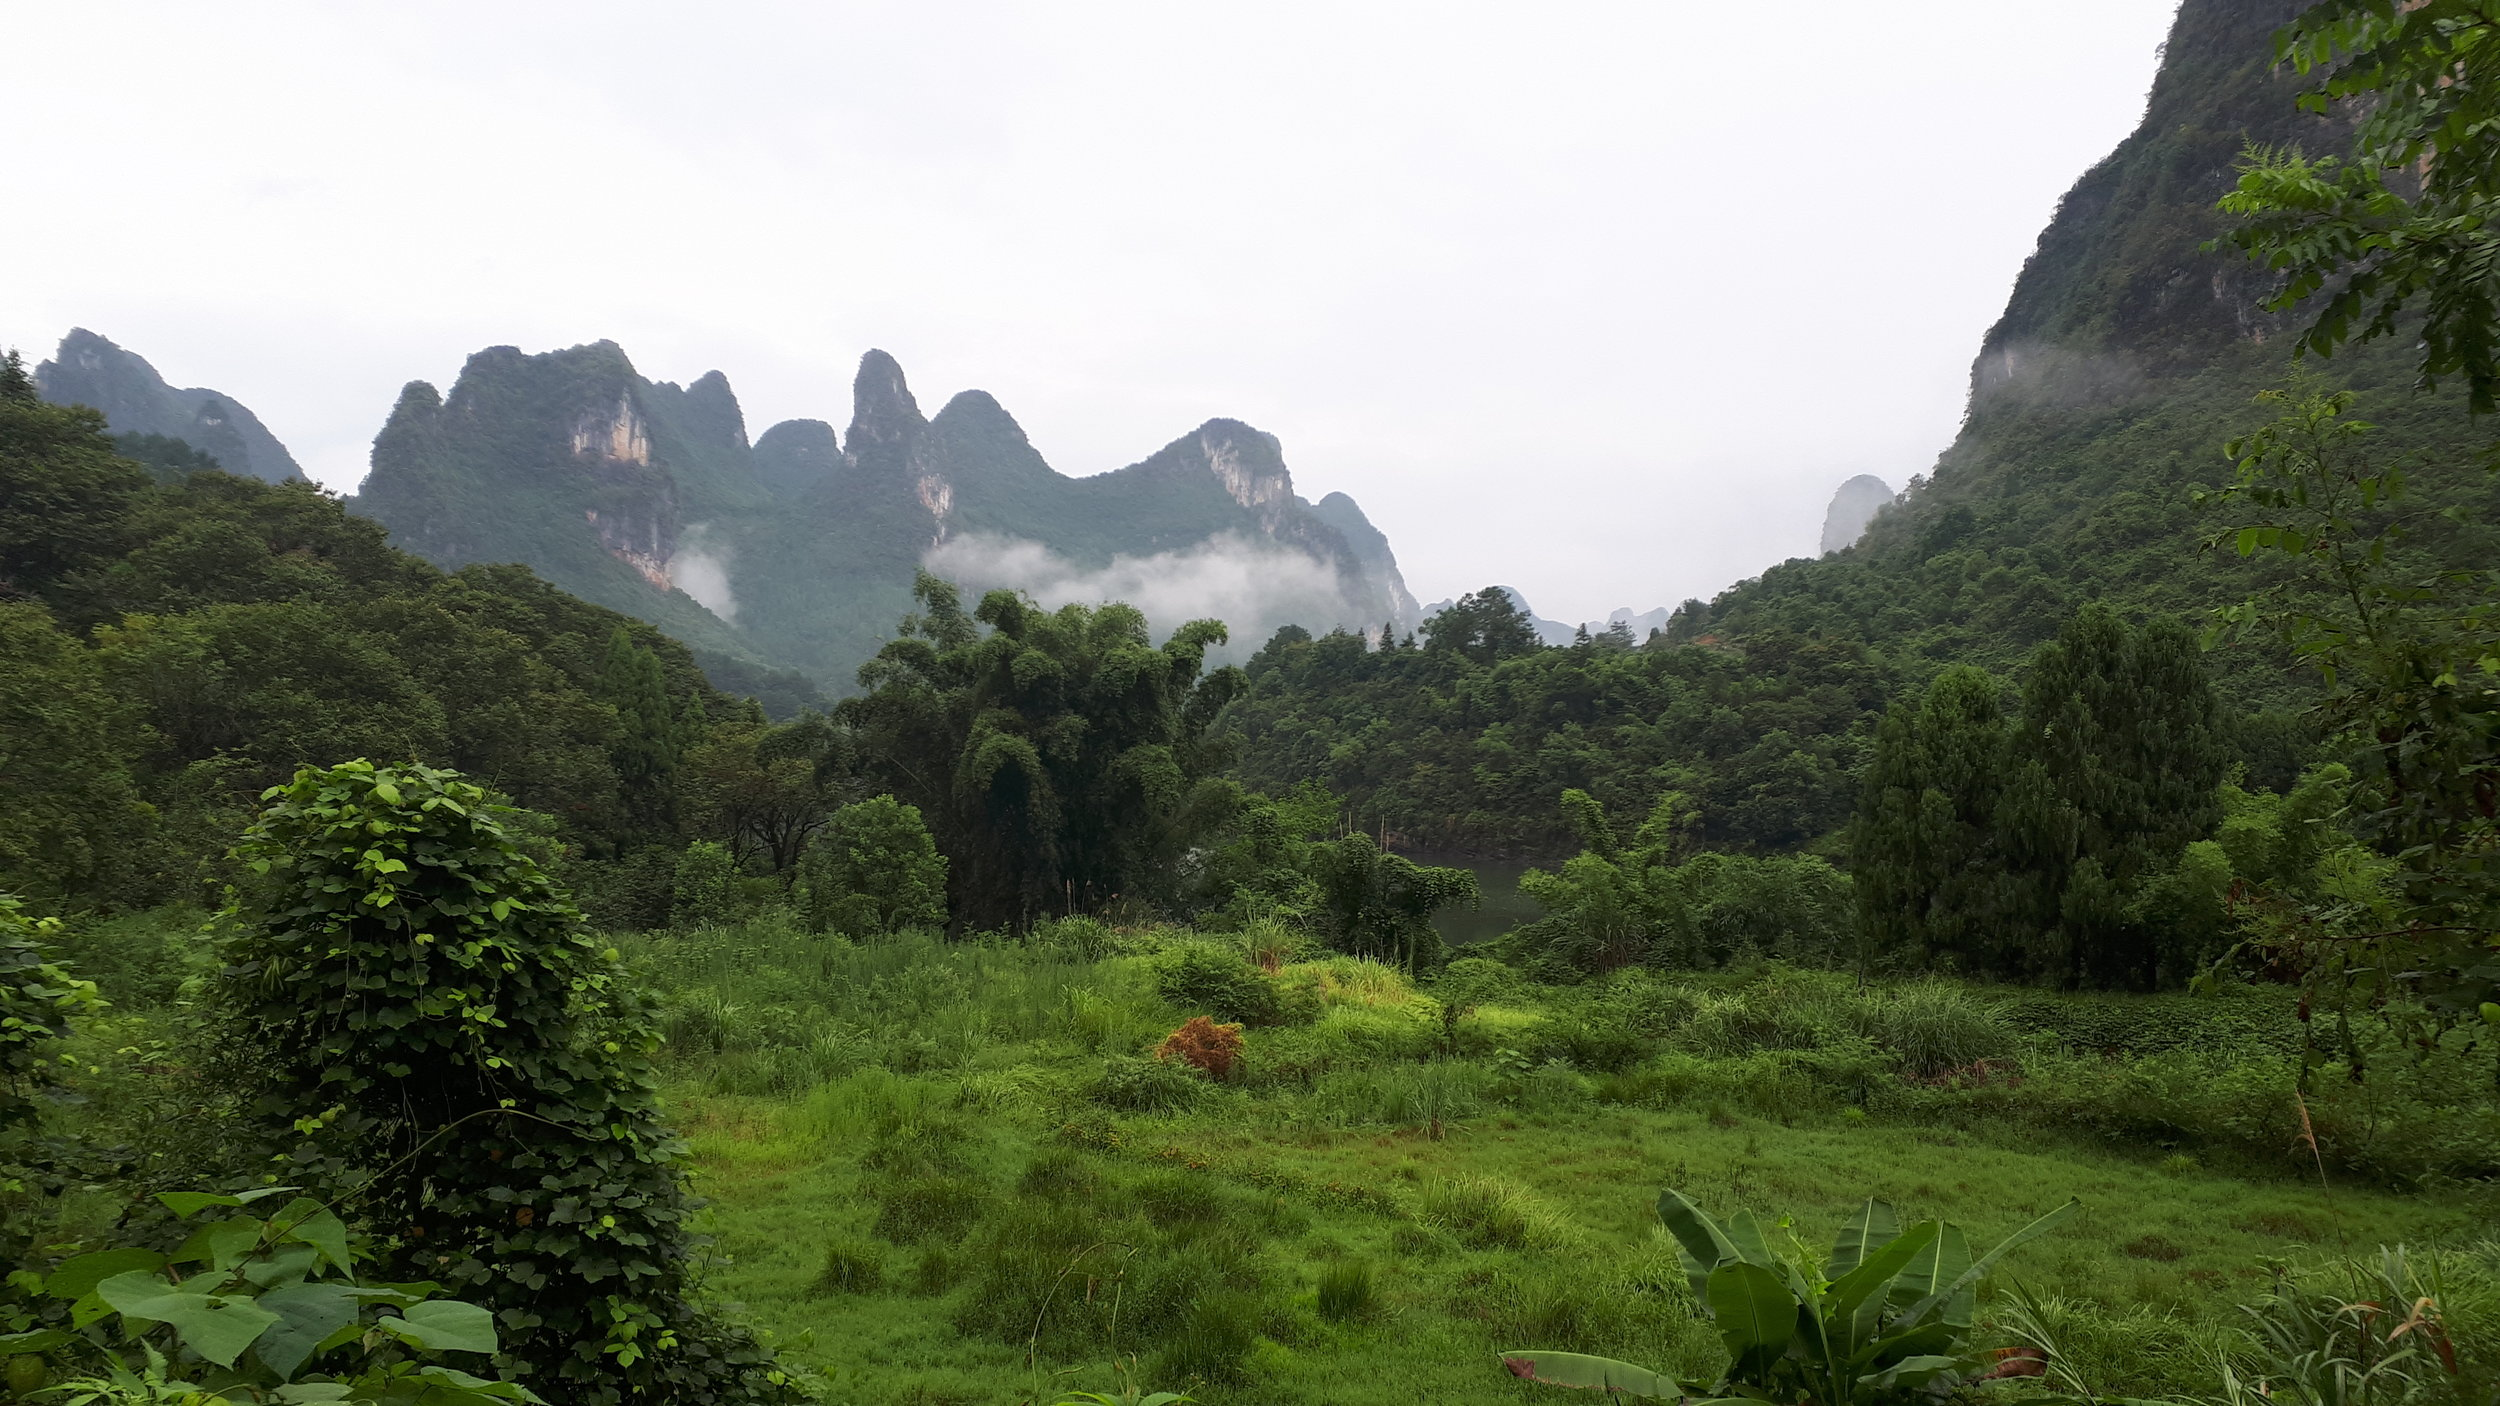 Beautiful landscape near the Lijiang River about 45 minutes from Yangshuo